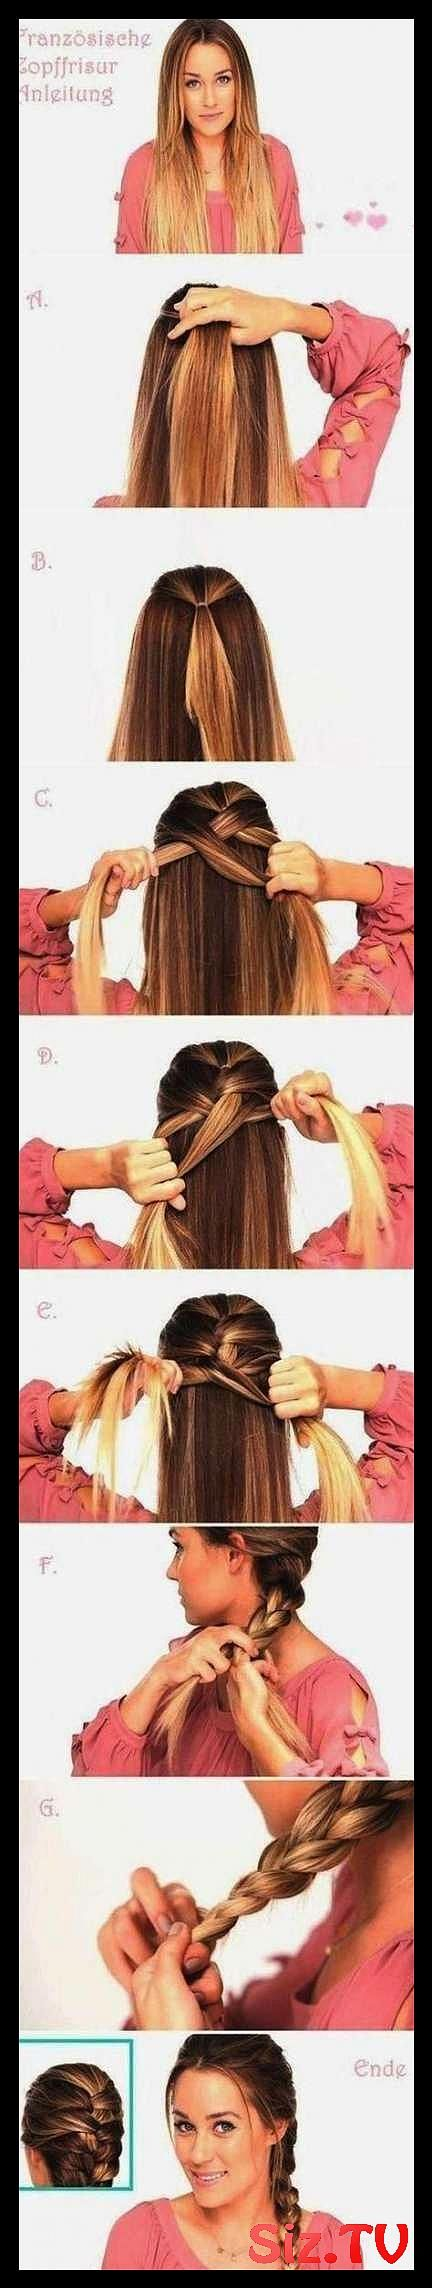 Hairstyles For School Lazy Messy Buns 37 Ideas Hairstyles For School Lazy Messy Buns 37 Ideas Hairstyles #messybunlongcurly #hairstyles #school #lazy